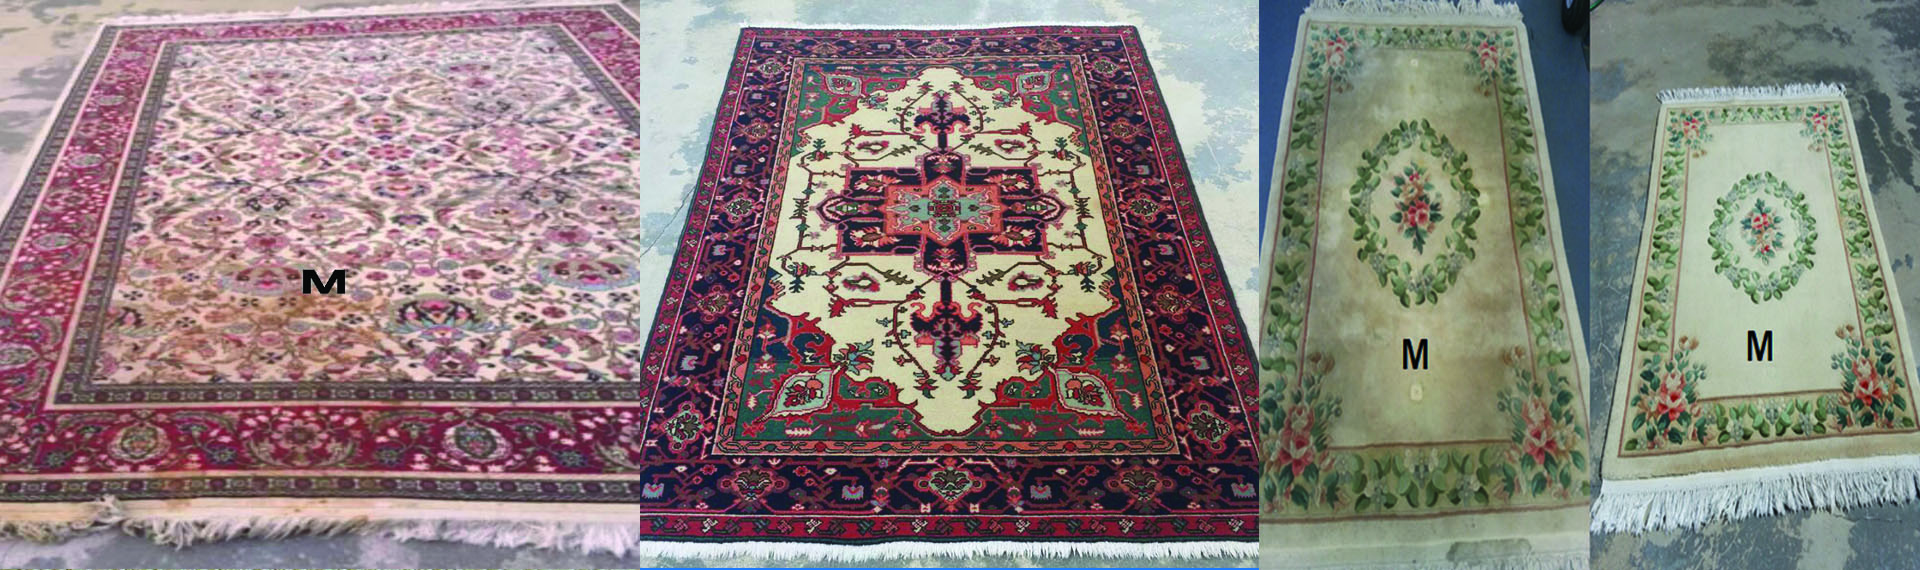 Oriental Rug Hand Cleaning Master & Repair Waterford Lakes Town Center FL